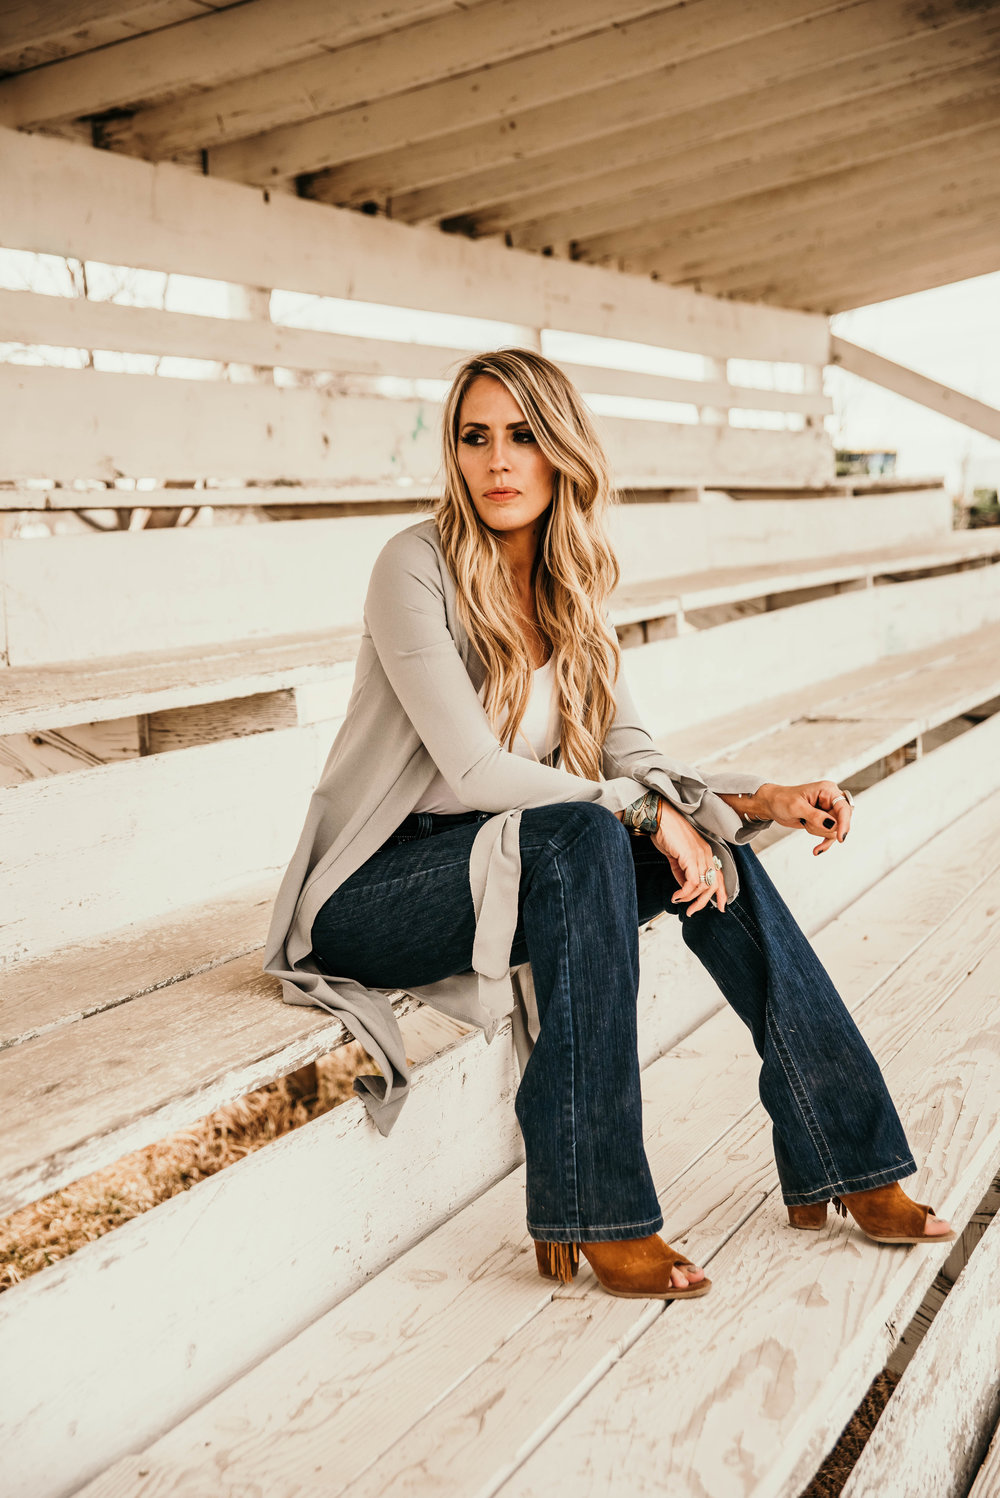 Miss. Miller's Photography | Kimes Ranch Jeans | Whintey Benton | Western Couture | Western Jeans | Western Fashion | Spring western fashion | rodeo fashion